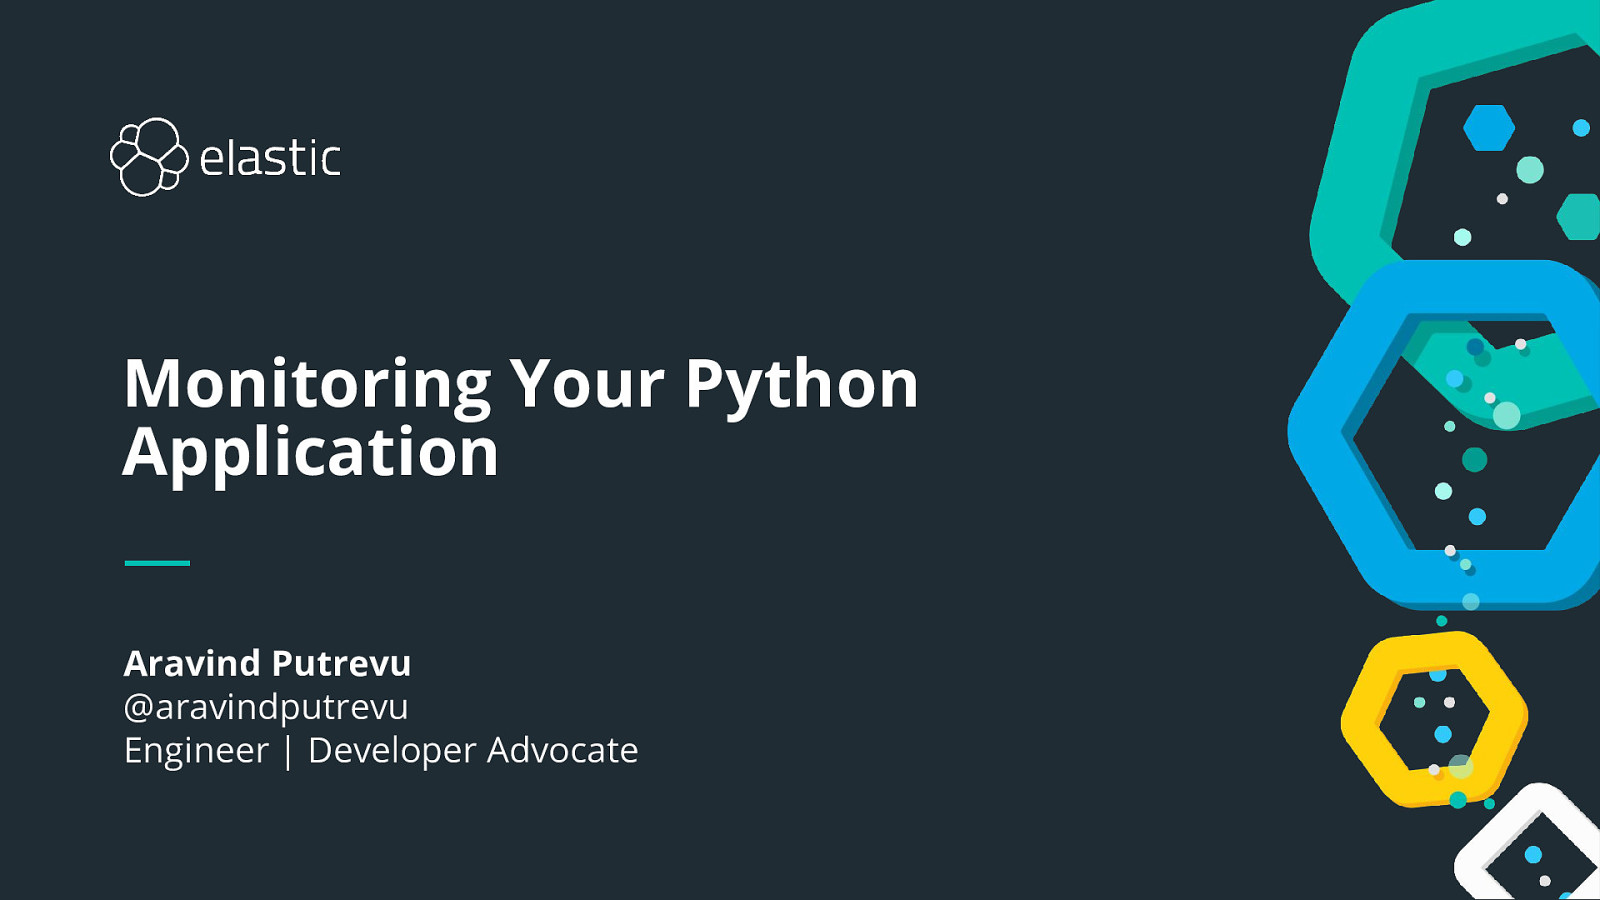 Monitor your Python Application